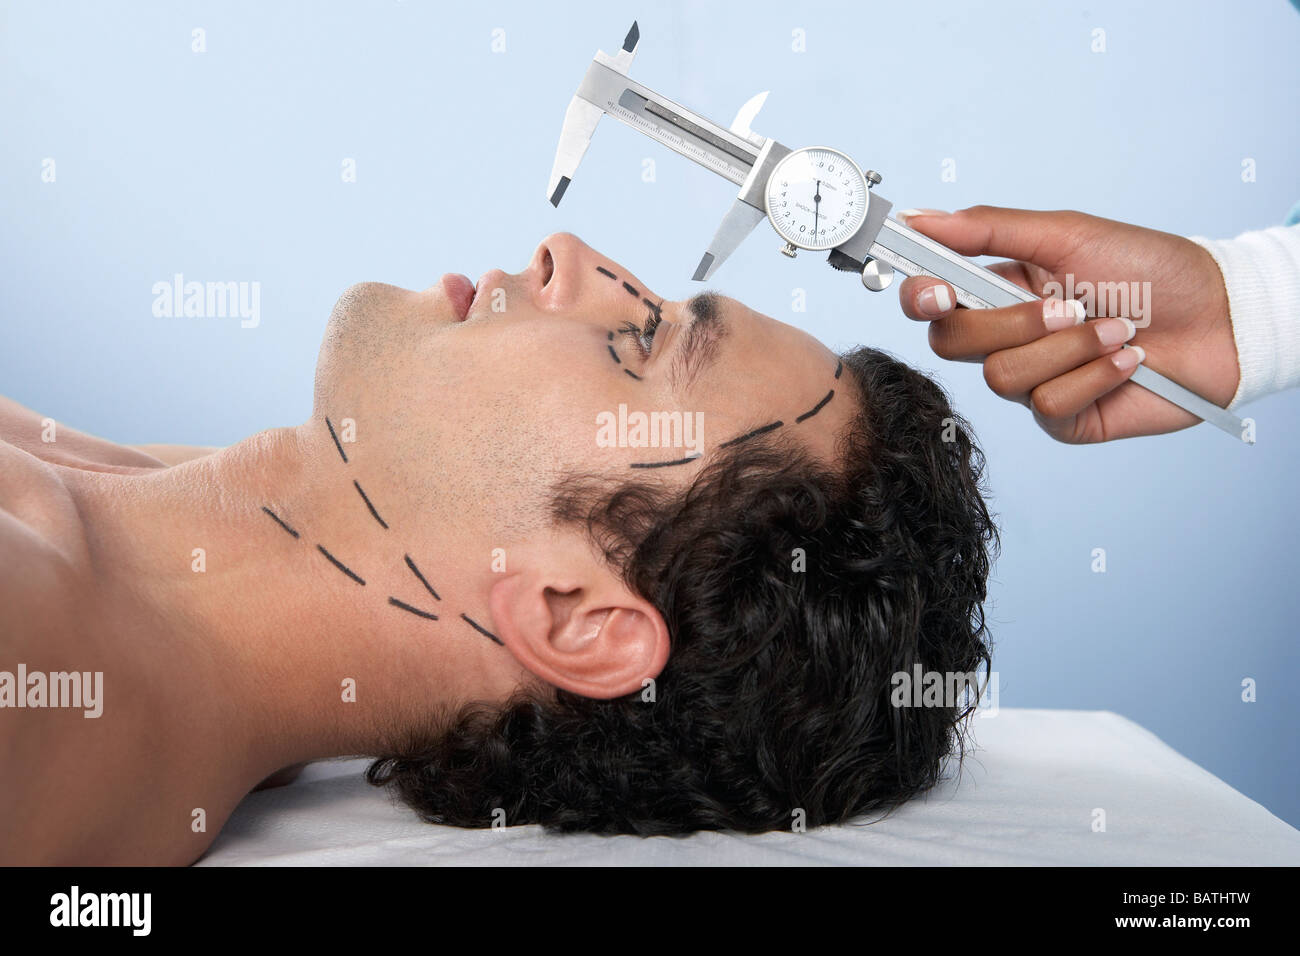 Cosmetic surgery. Vernier calipers being used by a surgeon to measure the length of the nose of a patient - Stock Image